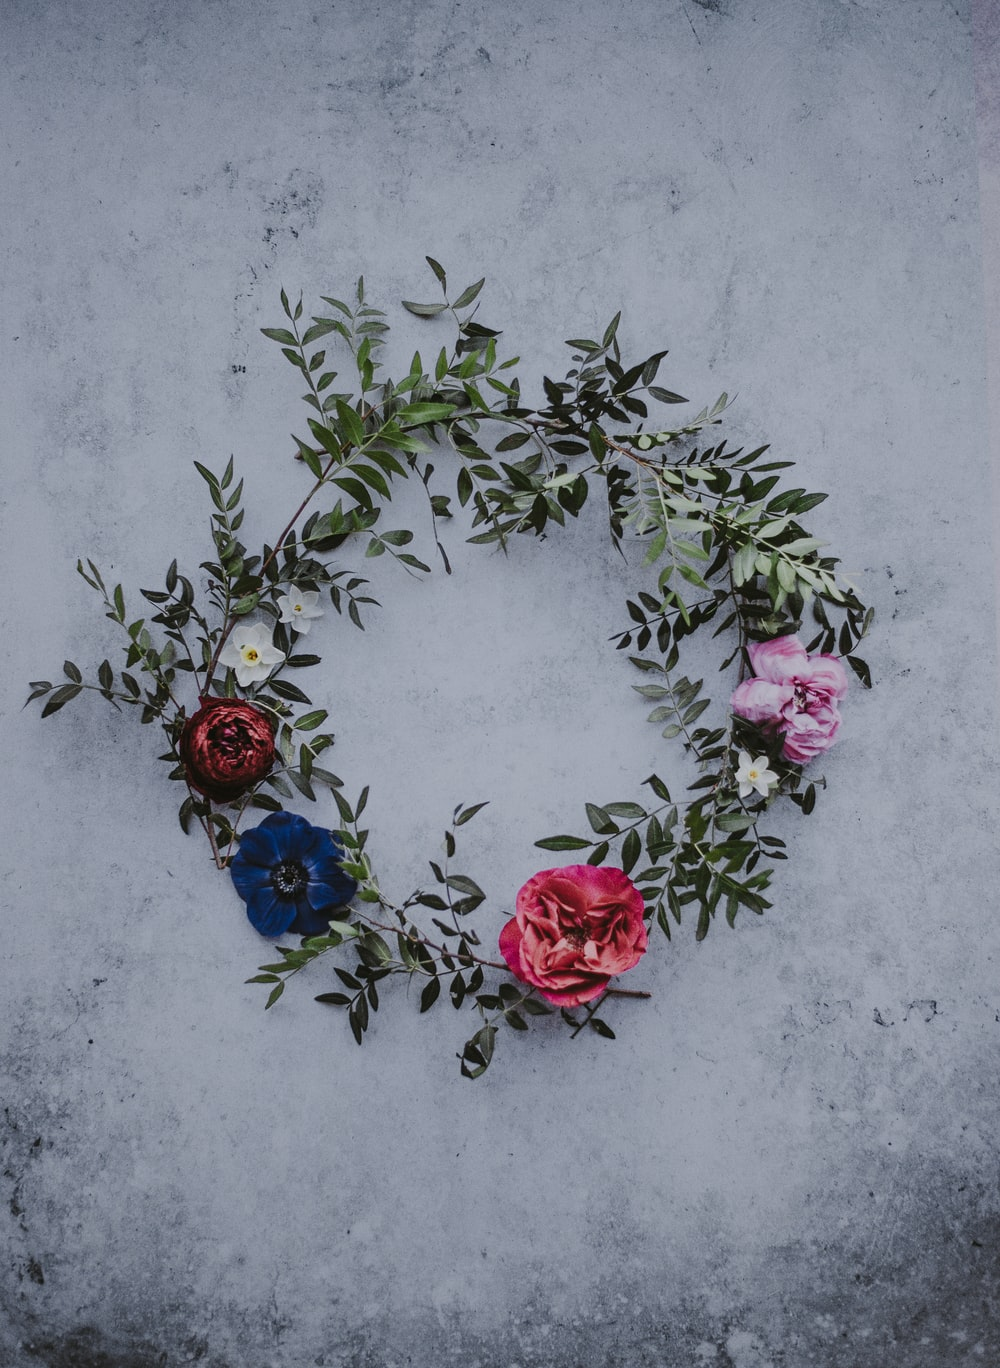 Floral wreath photo by annie spratt anniespratt on unsplash red blue and white flower wreath on white concrete izmirmasajfo